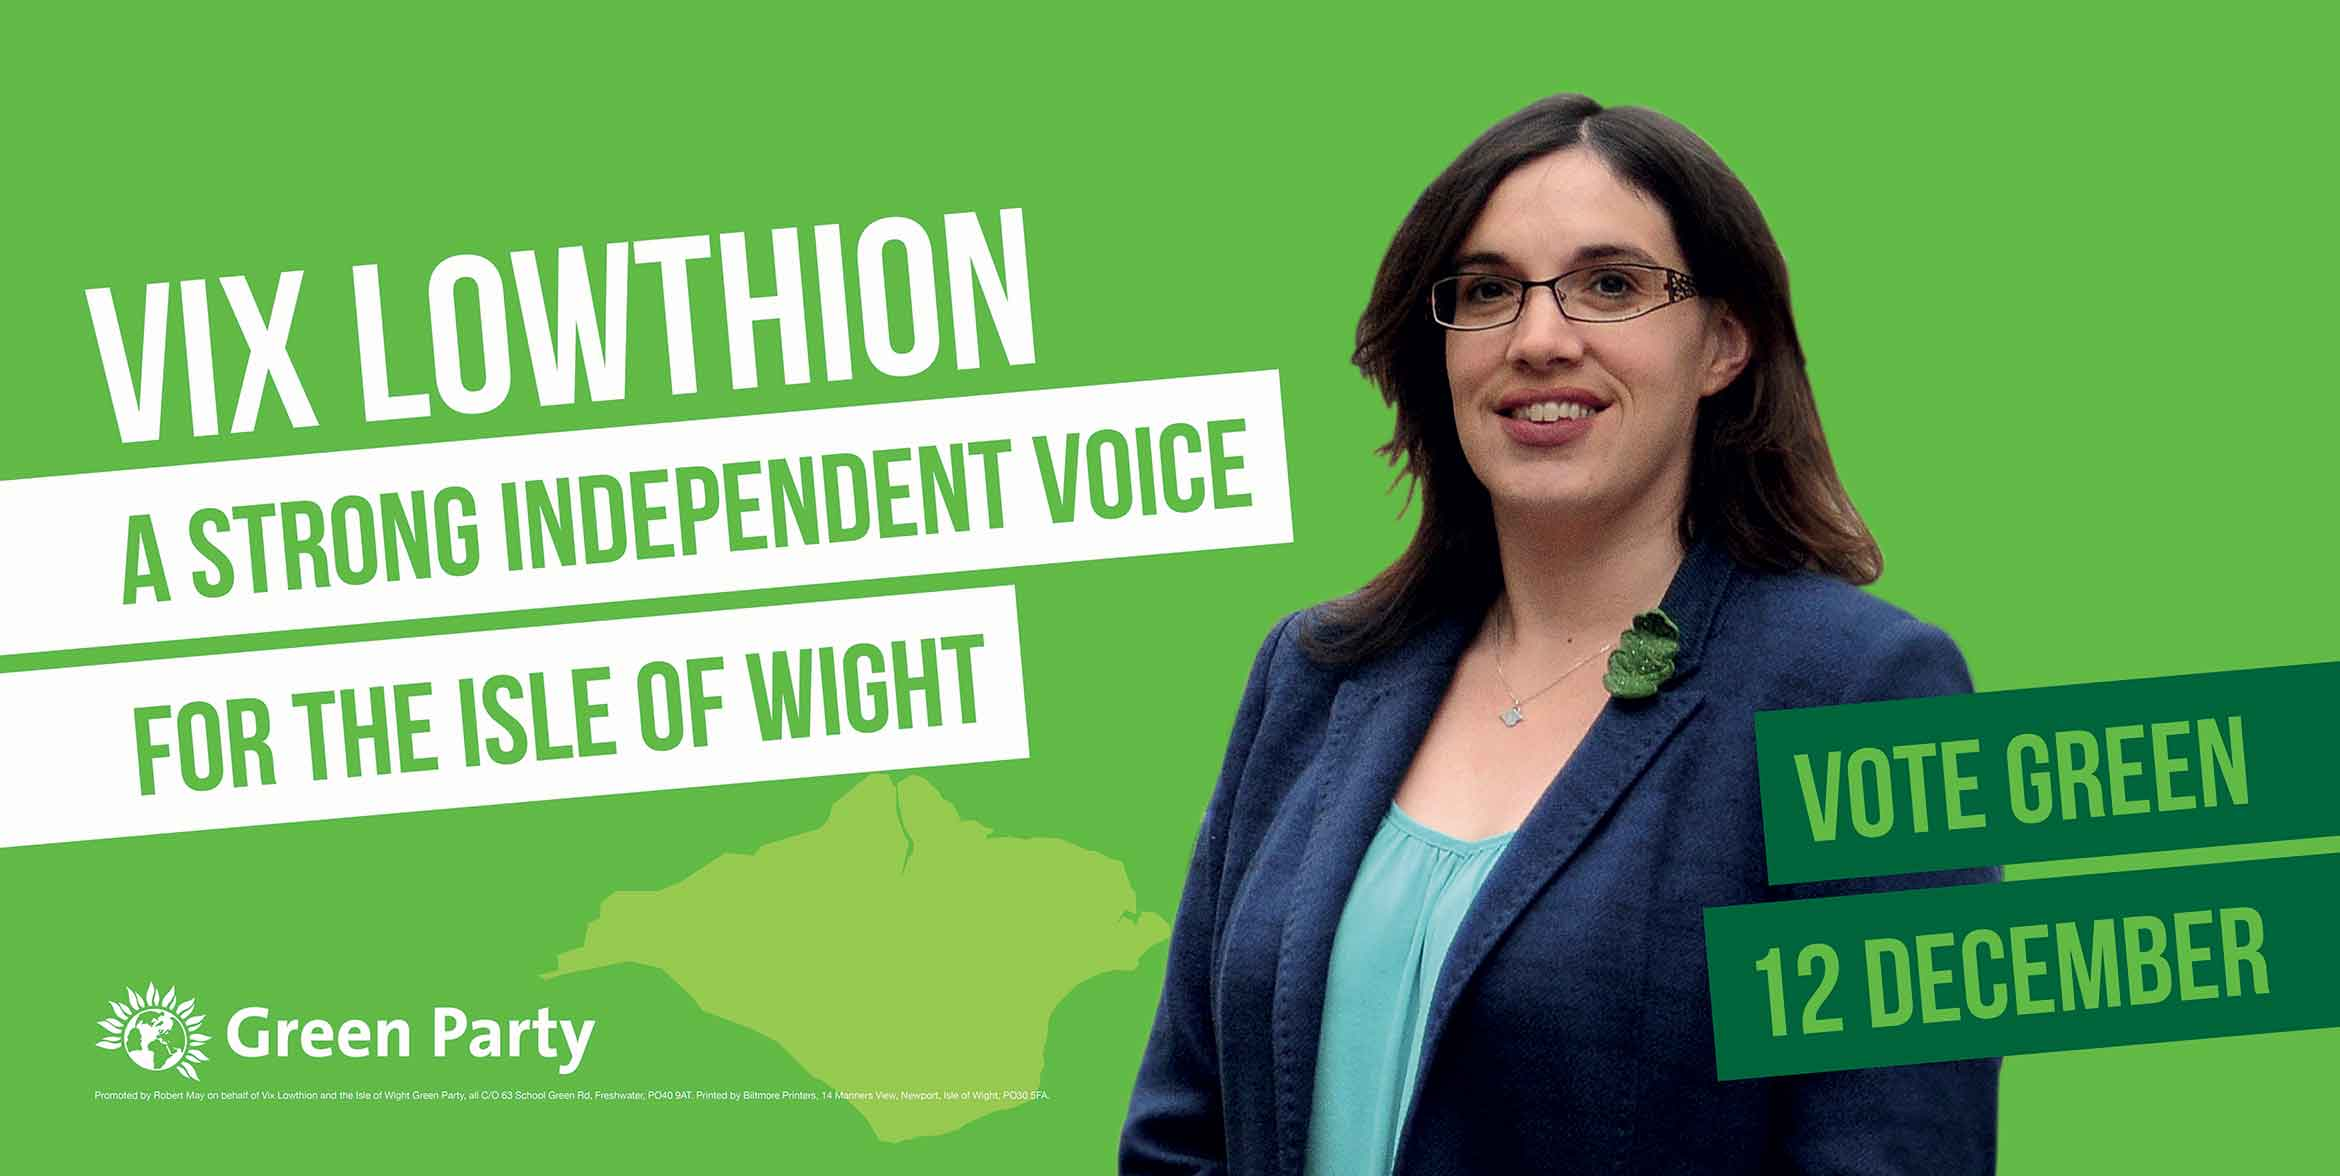 Vix Lowthion – A strong independent voice for the Isle of Wight – Vote Green, 12 December